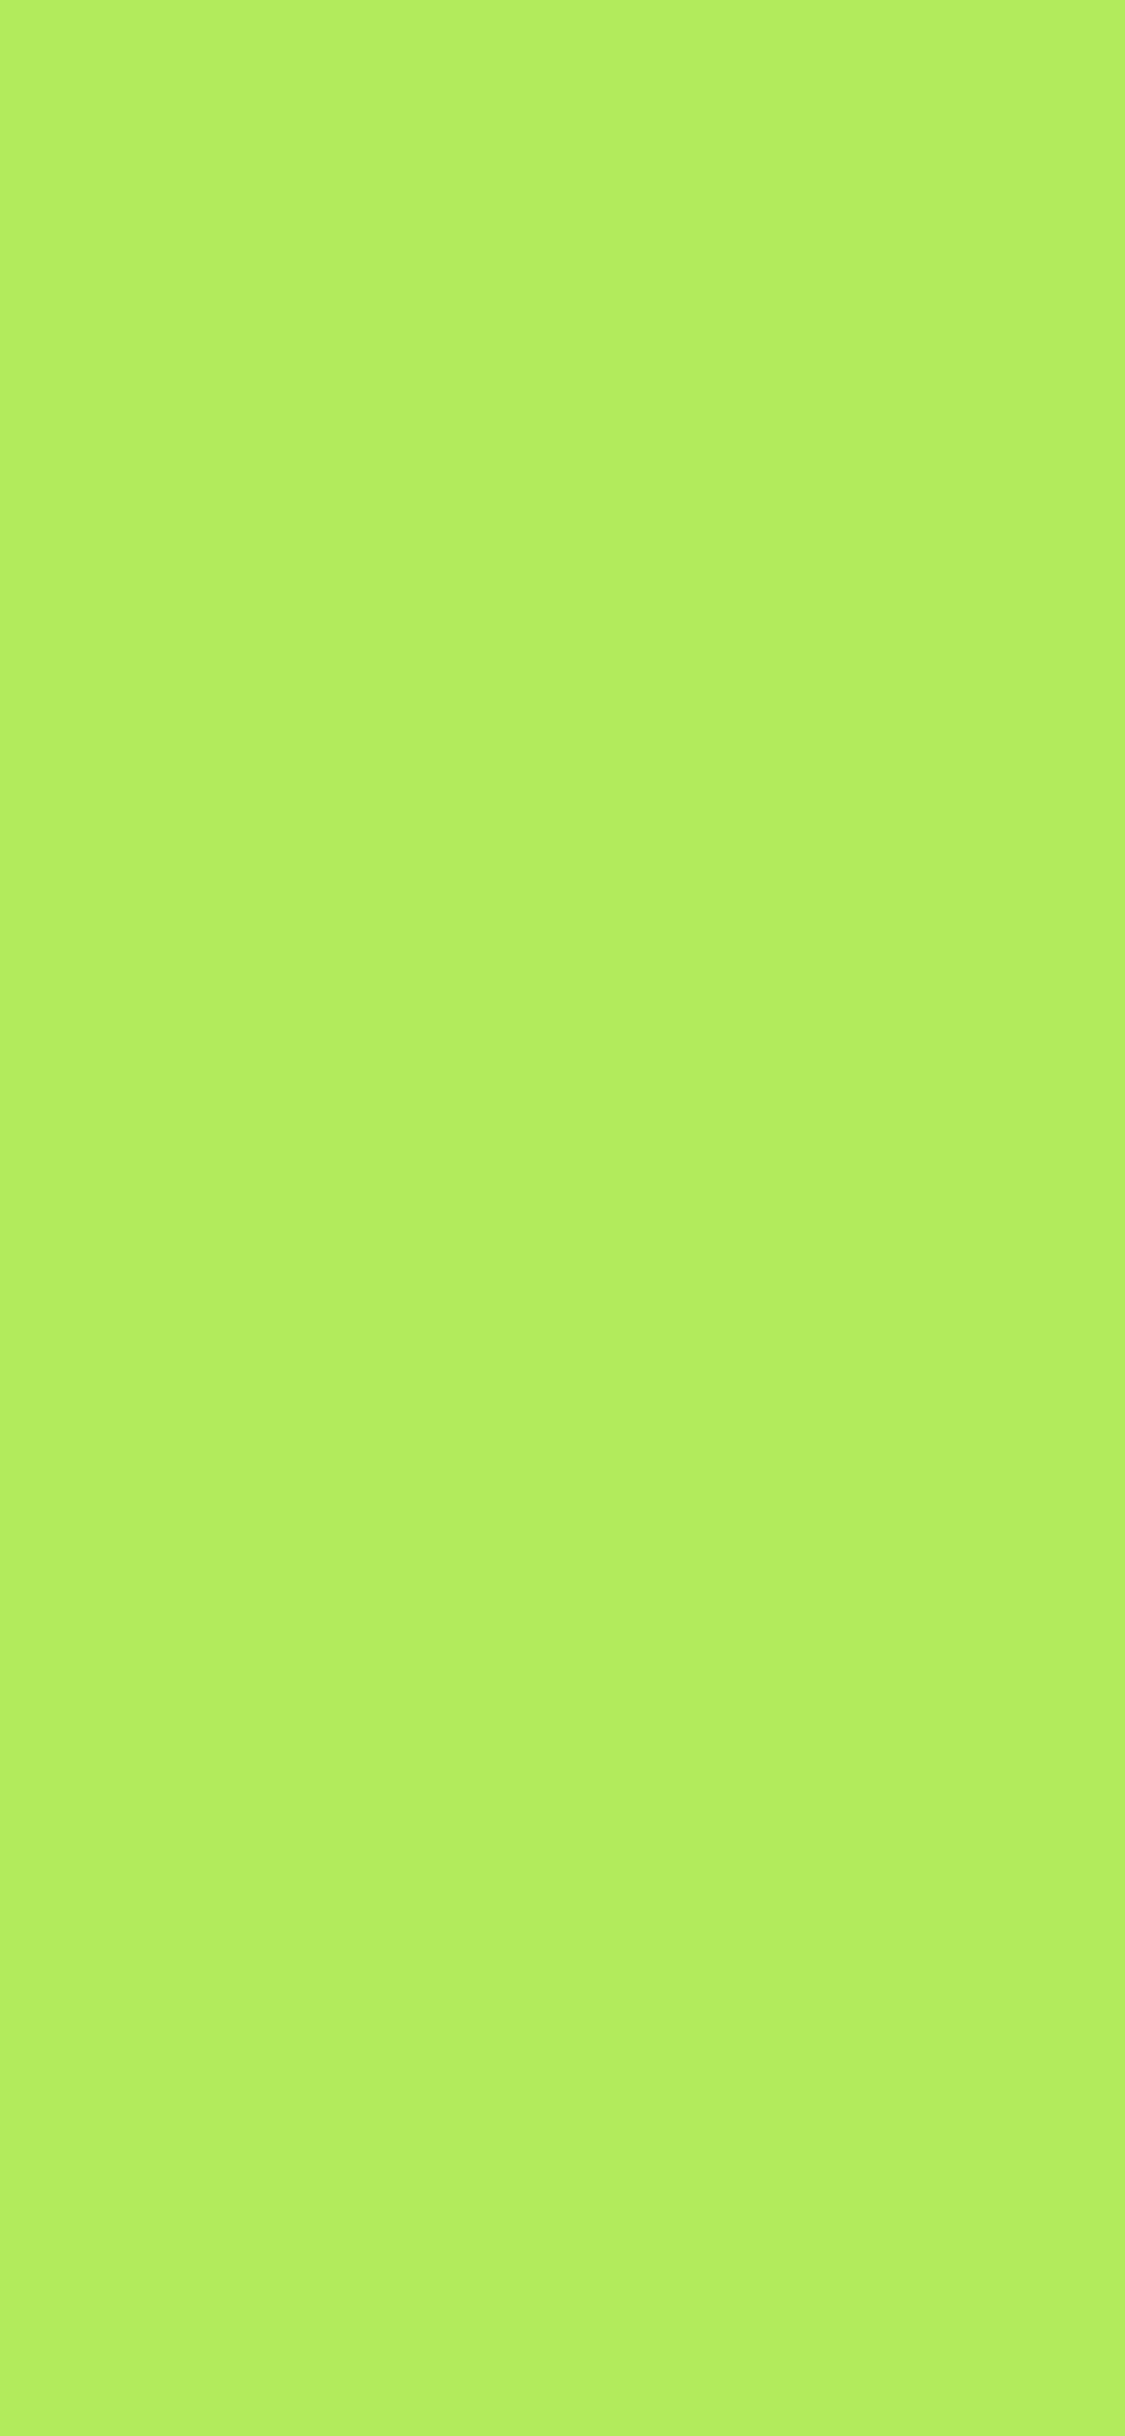 1125x2436 Inchworm Solid Color Background